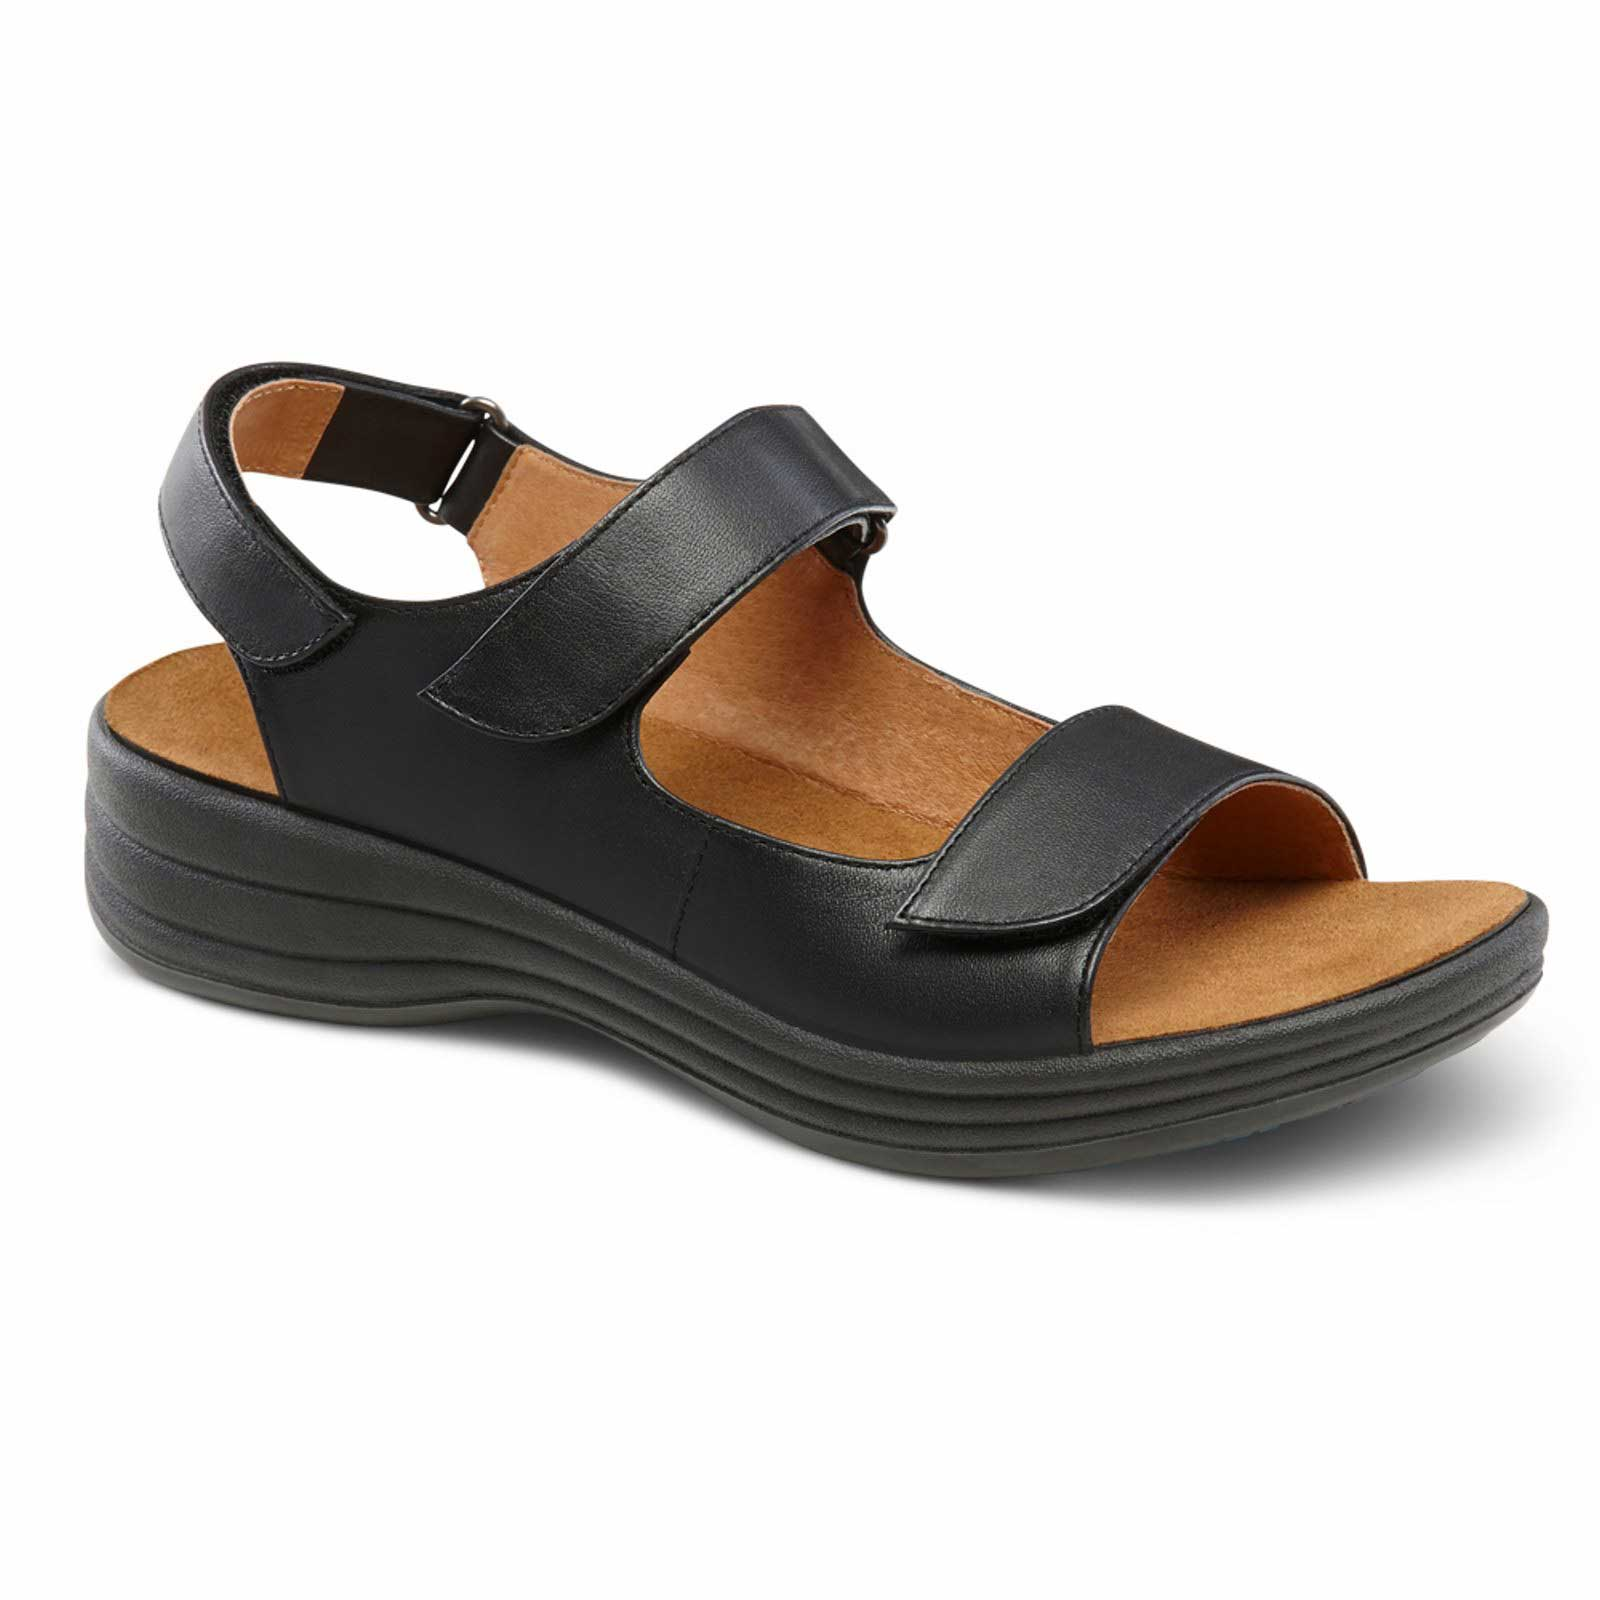 Dr. Comfort Shoes Liz - Women's Sandal - Open Comfort Collection with Removable Footbeds for Orthotics - Medium (B) - Extra Wide (D) - Extra Depth